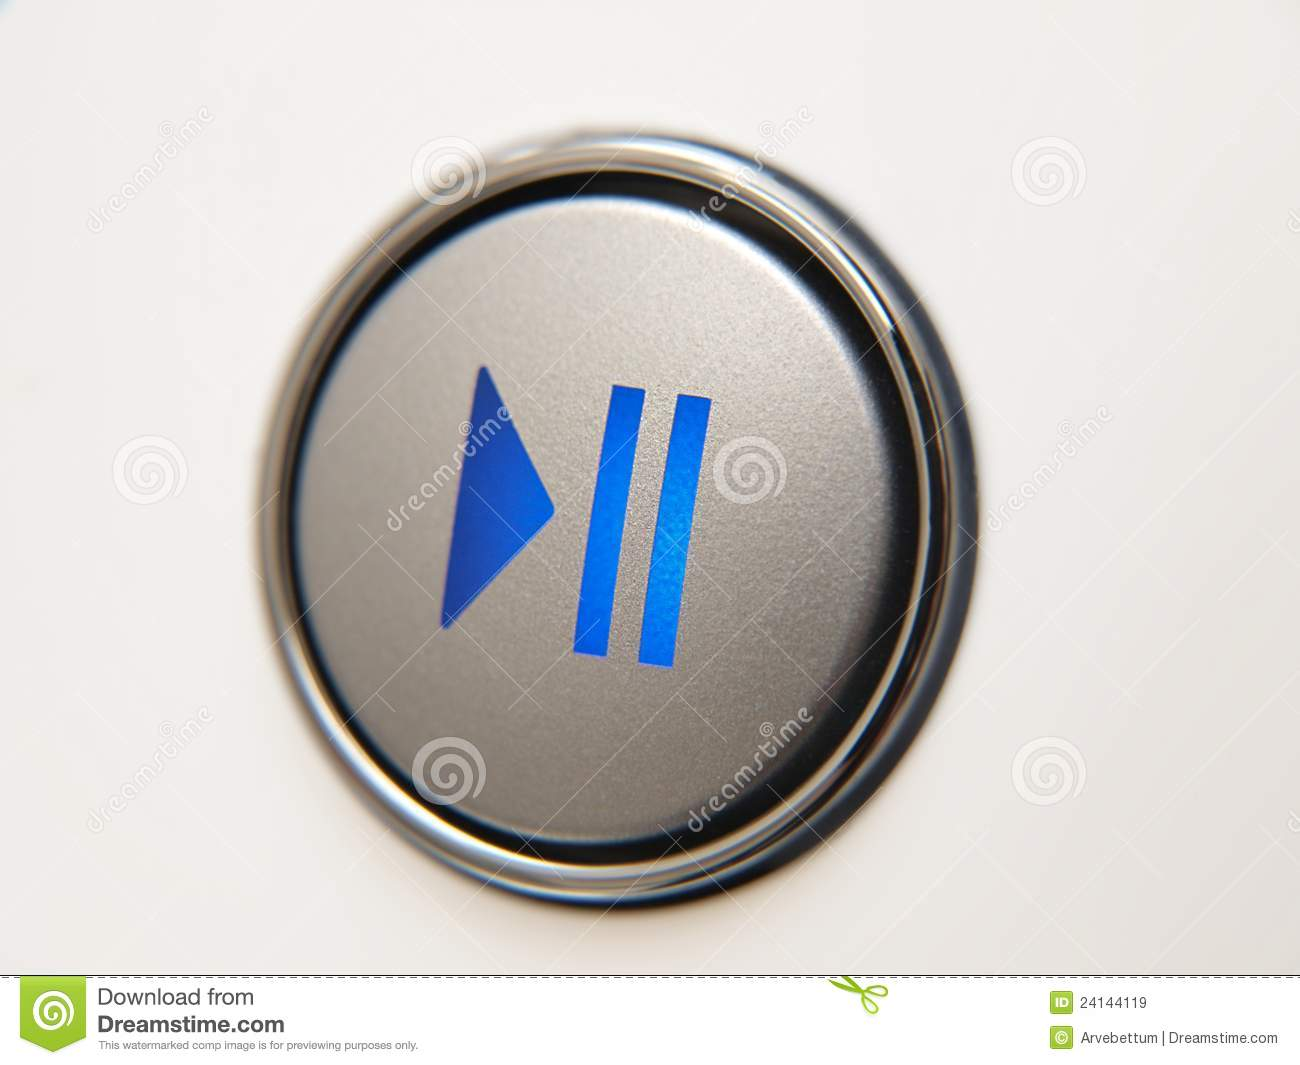 play pause button stock image image of silver single